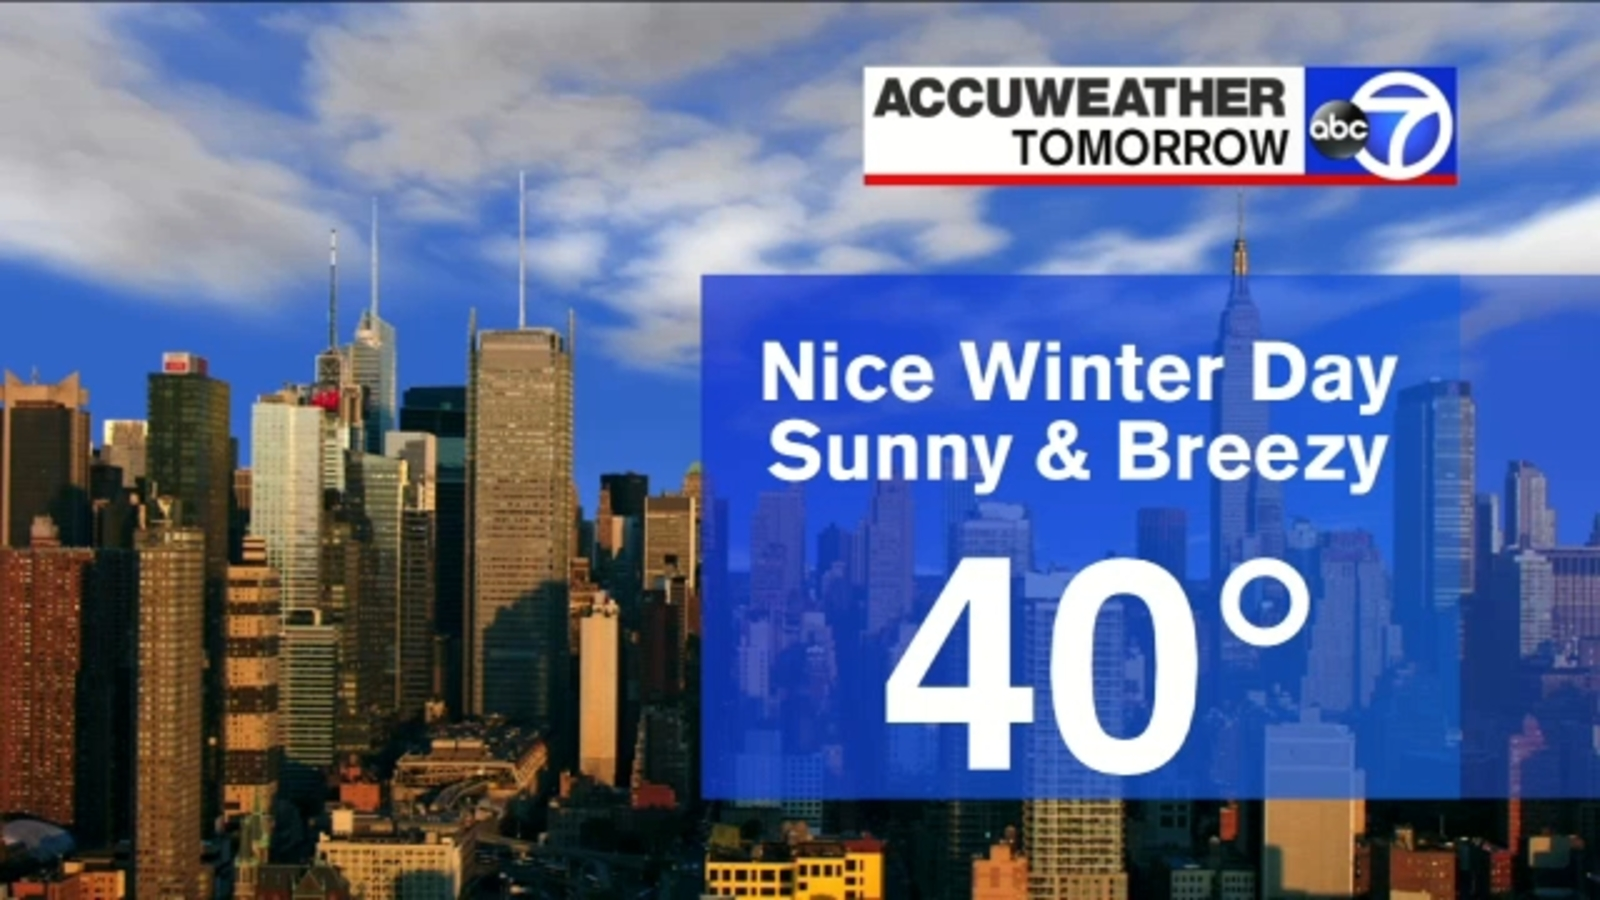 AccuWeather Alert: More snow this weekend